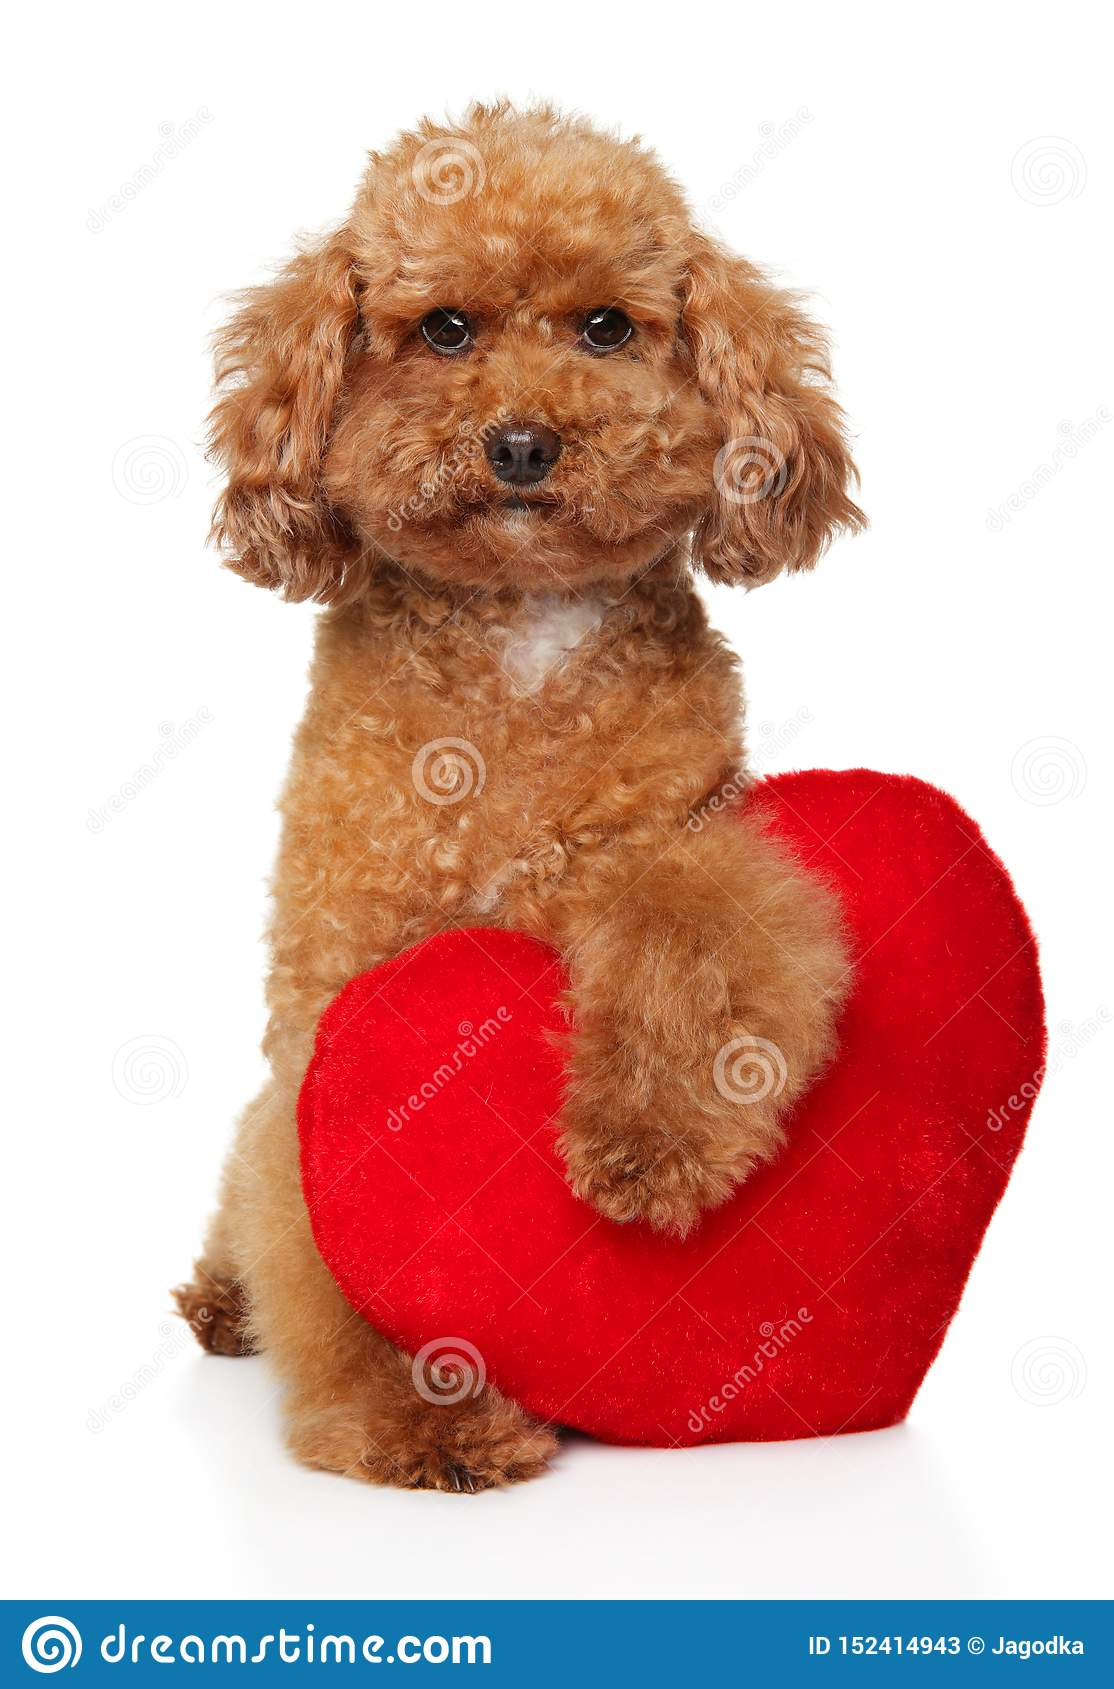 Poodle Puppy With Red Valentine Heart Stock Image Image Of Small Friend 152414943